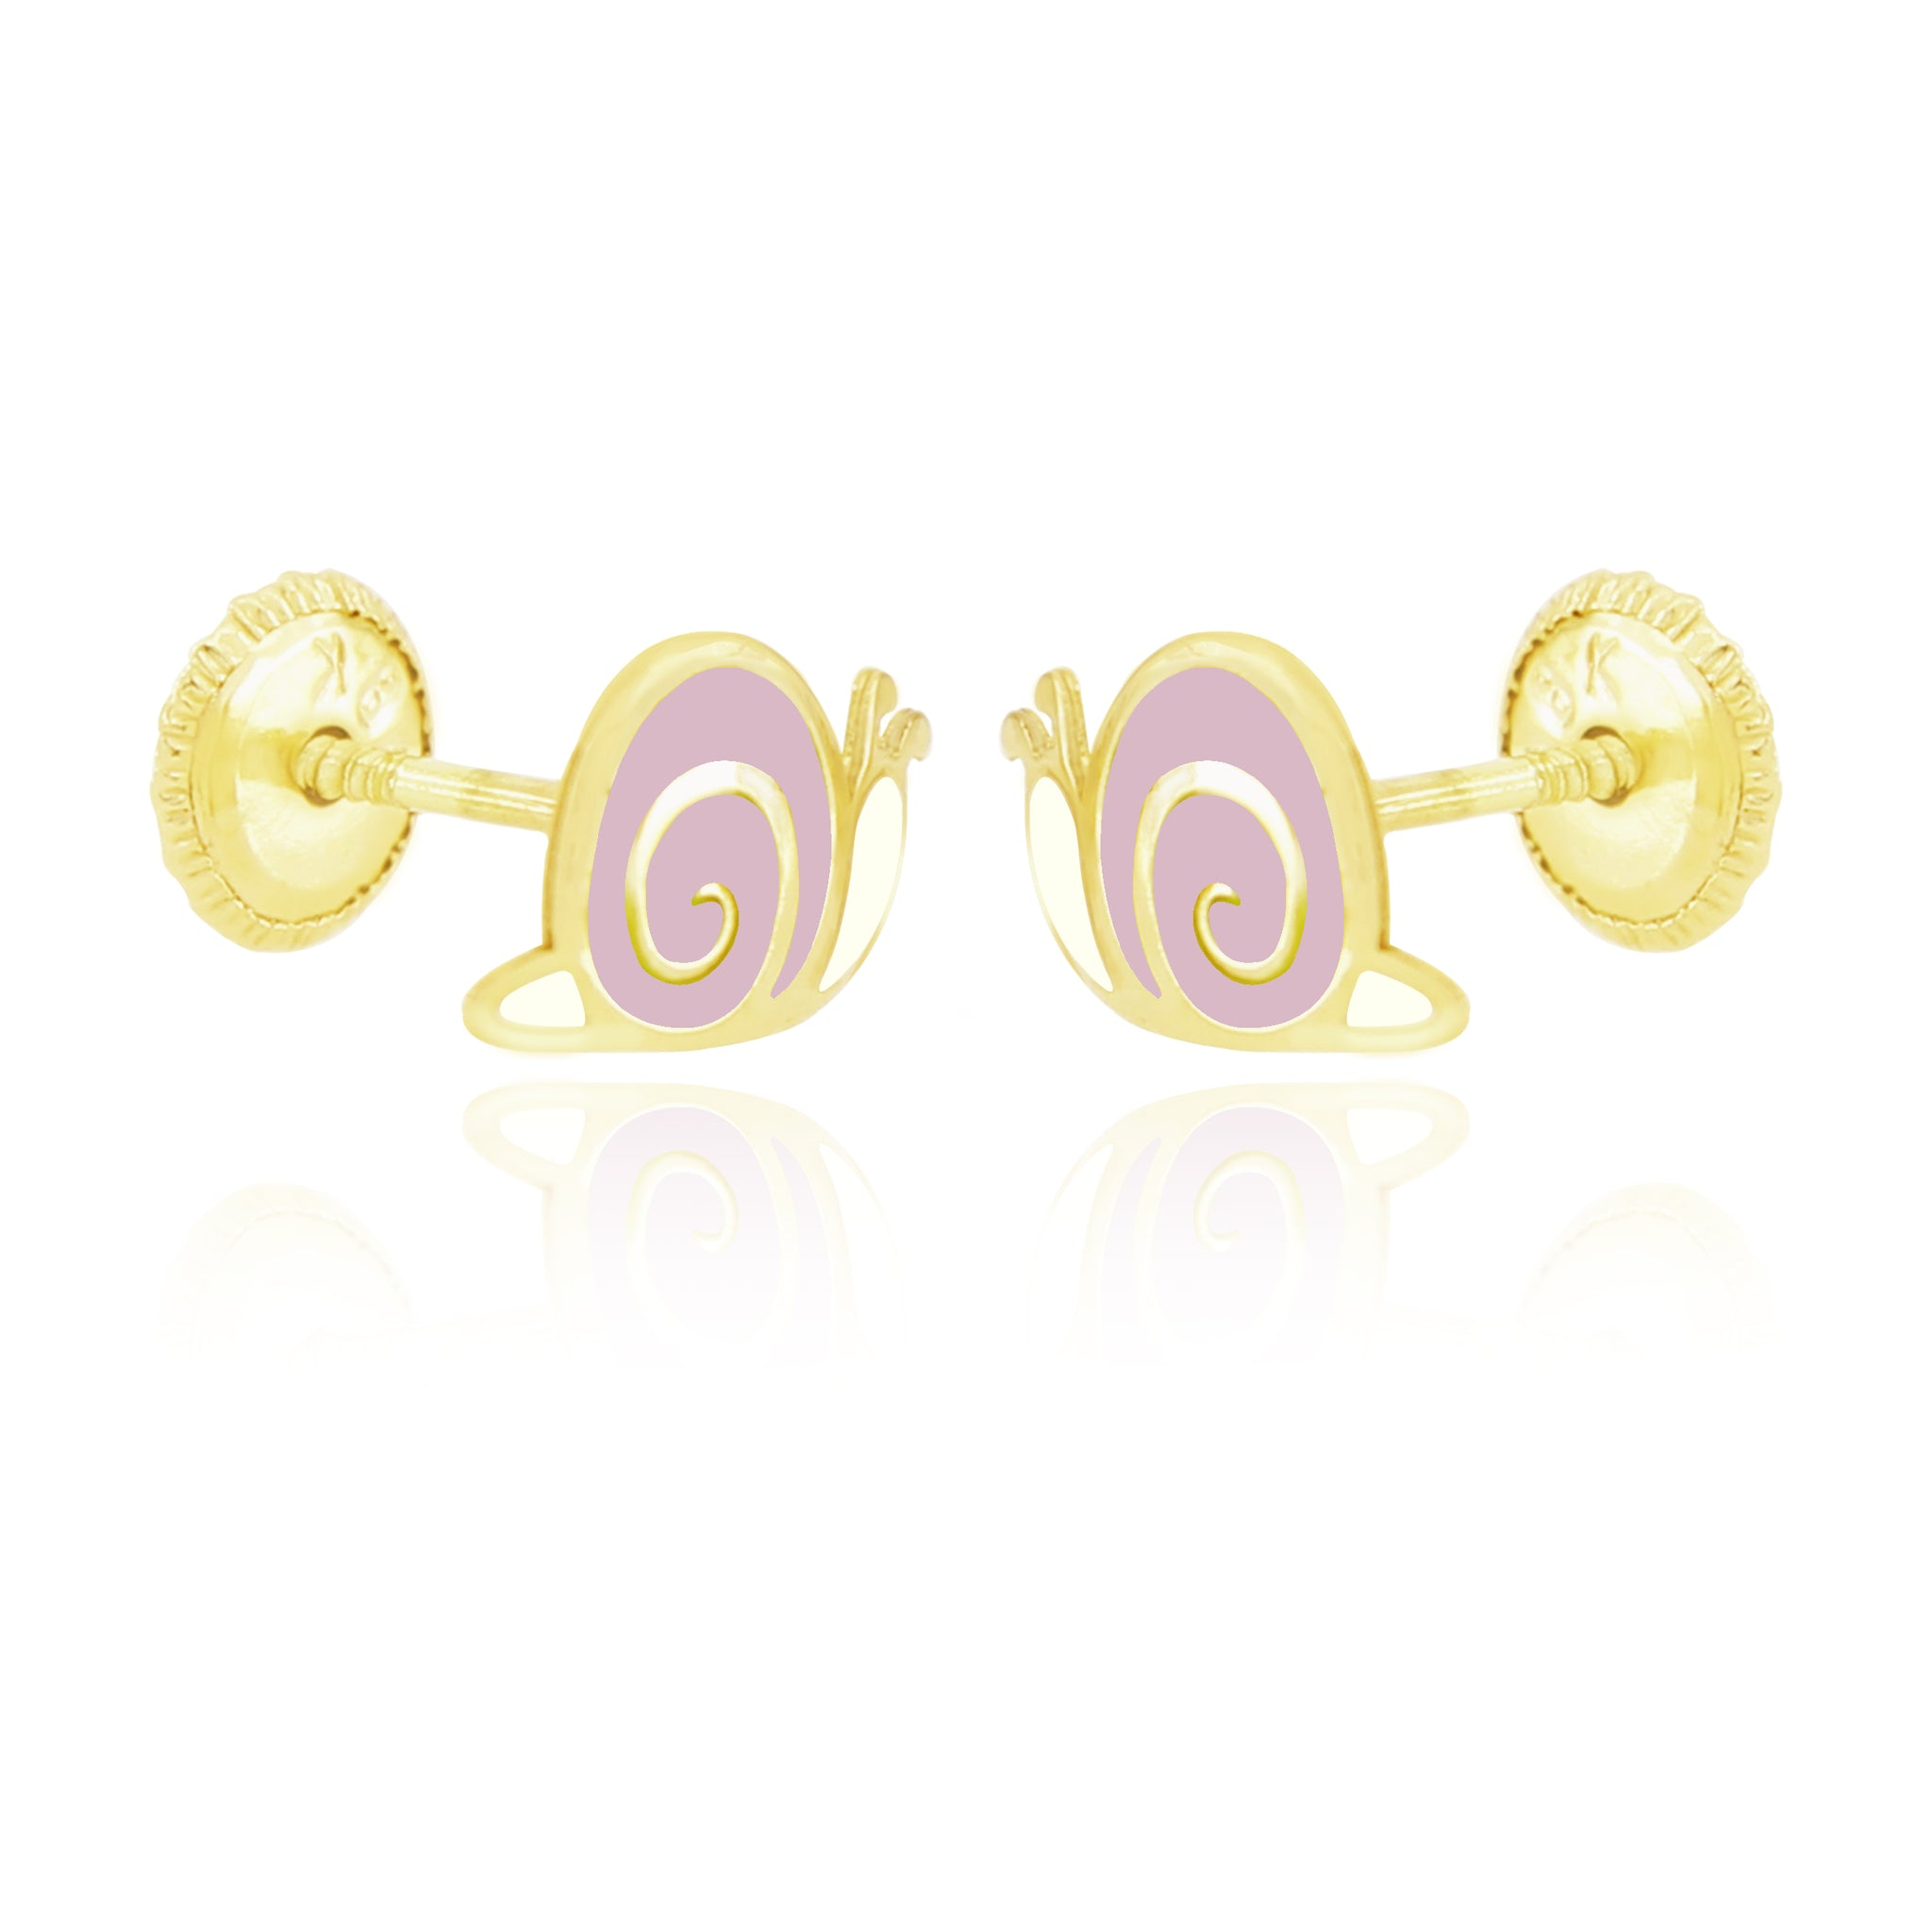 Snugums The Snail Earrings - Pink